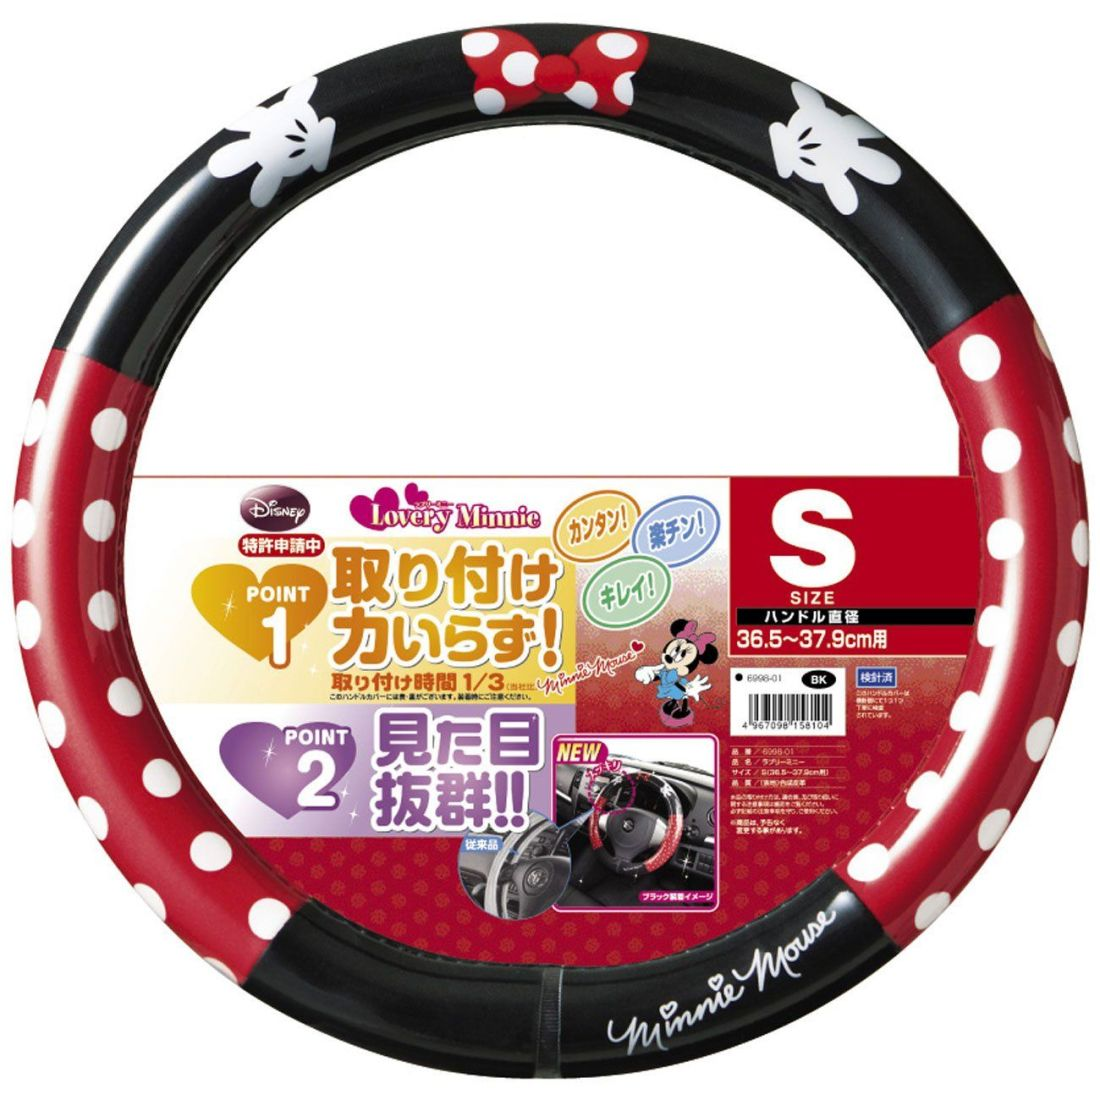 Minnie mouse steering wheel cover disney car pinterest